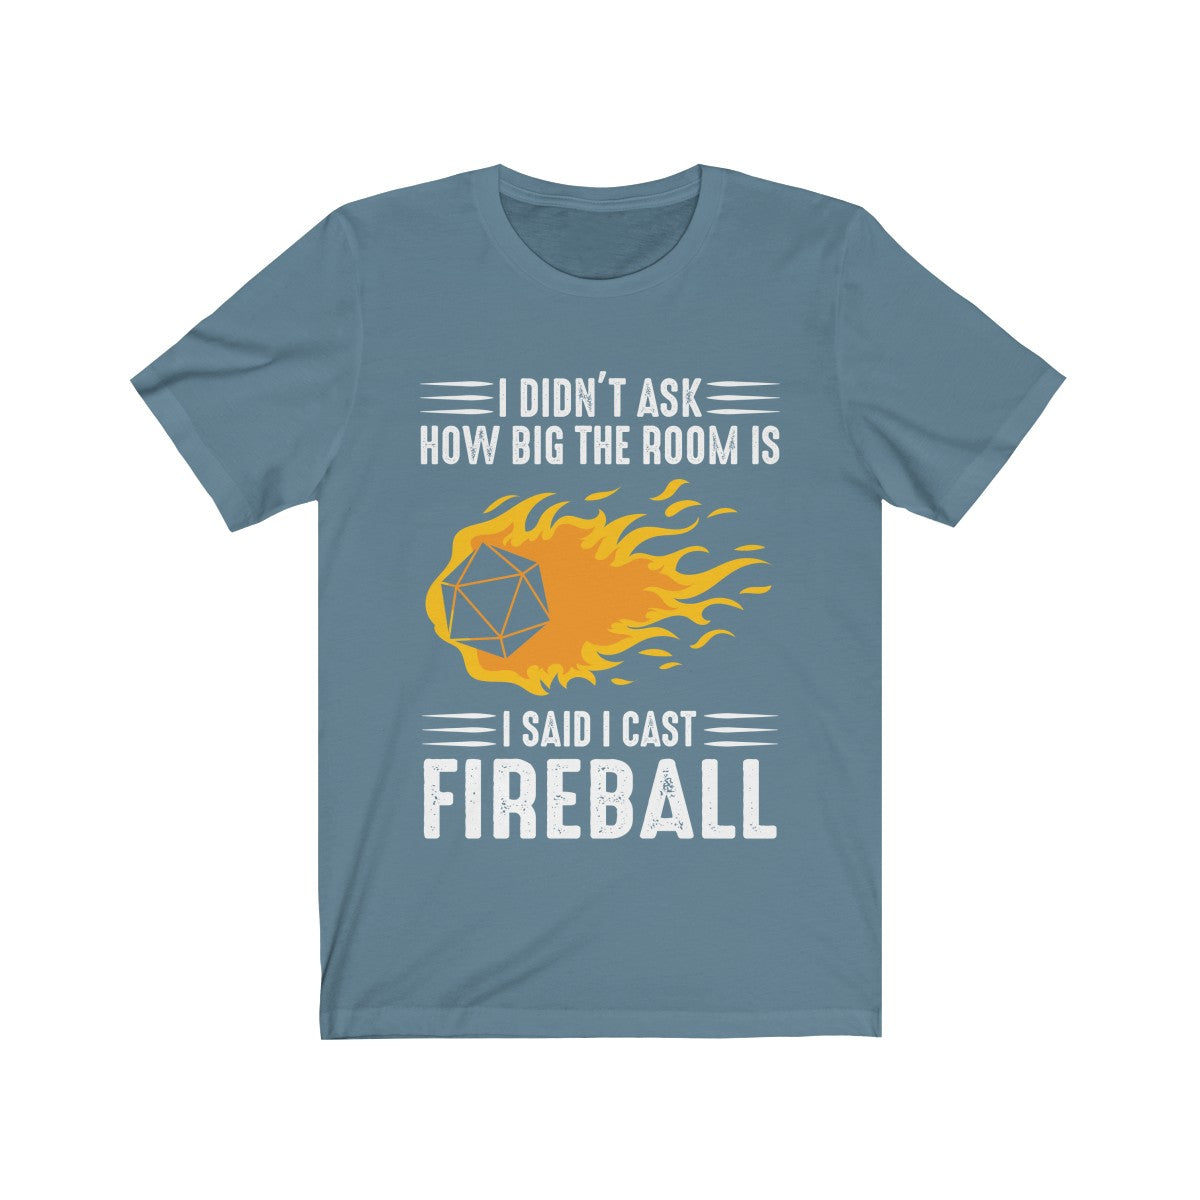 I said I cast Fireball T-shirt - Wildbot3d